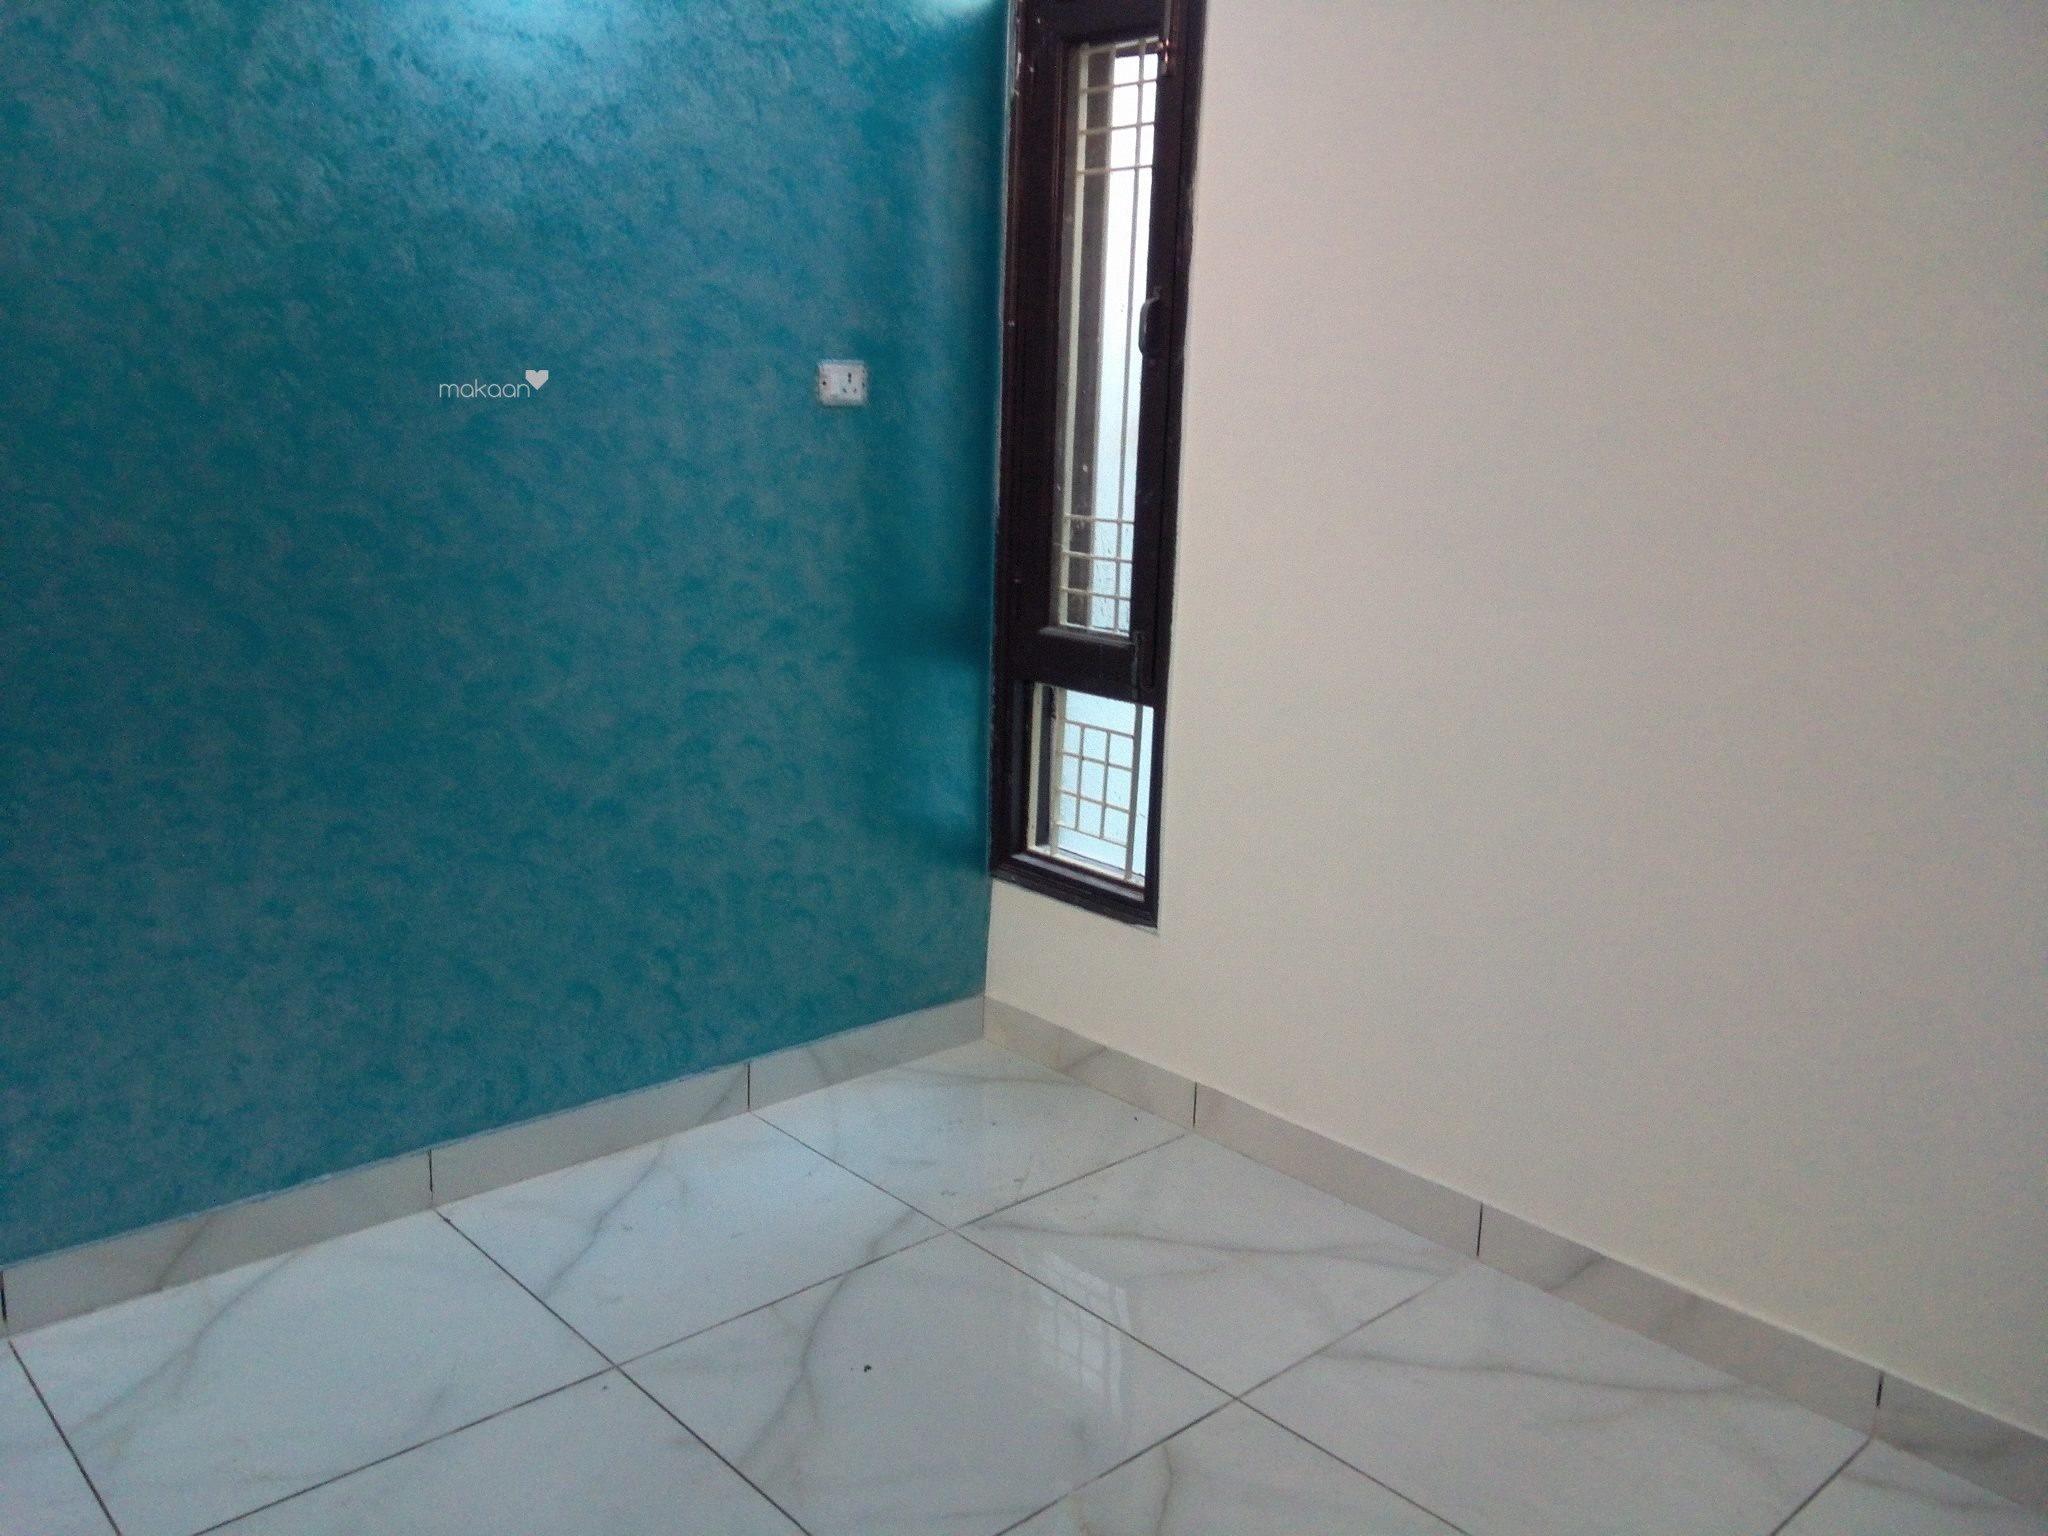 550 sq ft 1BHK 1BHK+1T (550 sq ft) Property By Demera Homz In Project, Sector 5 Vaishali